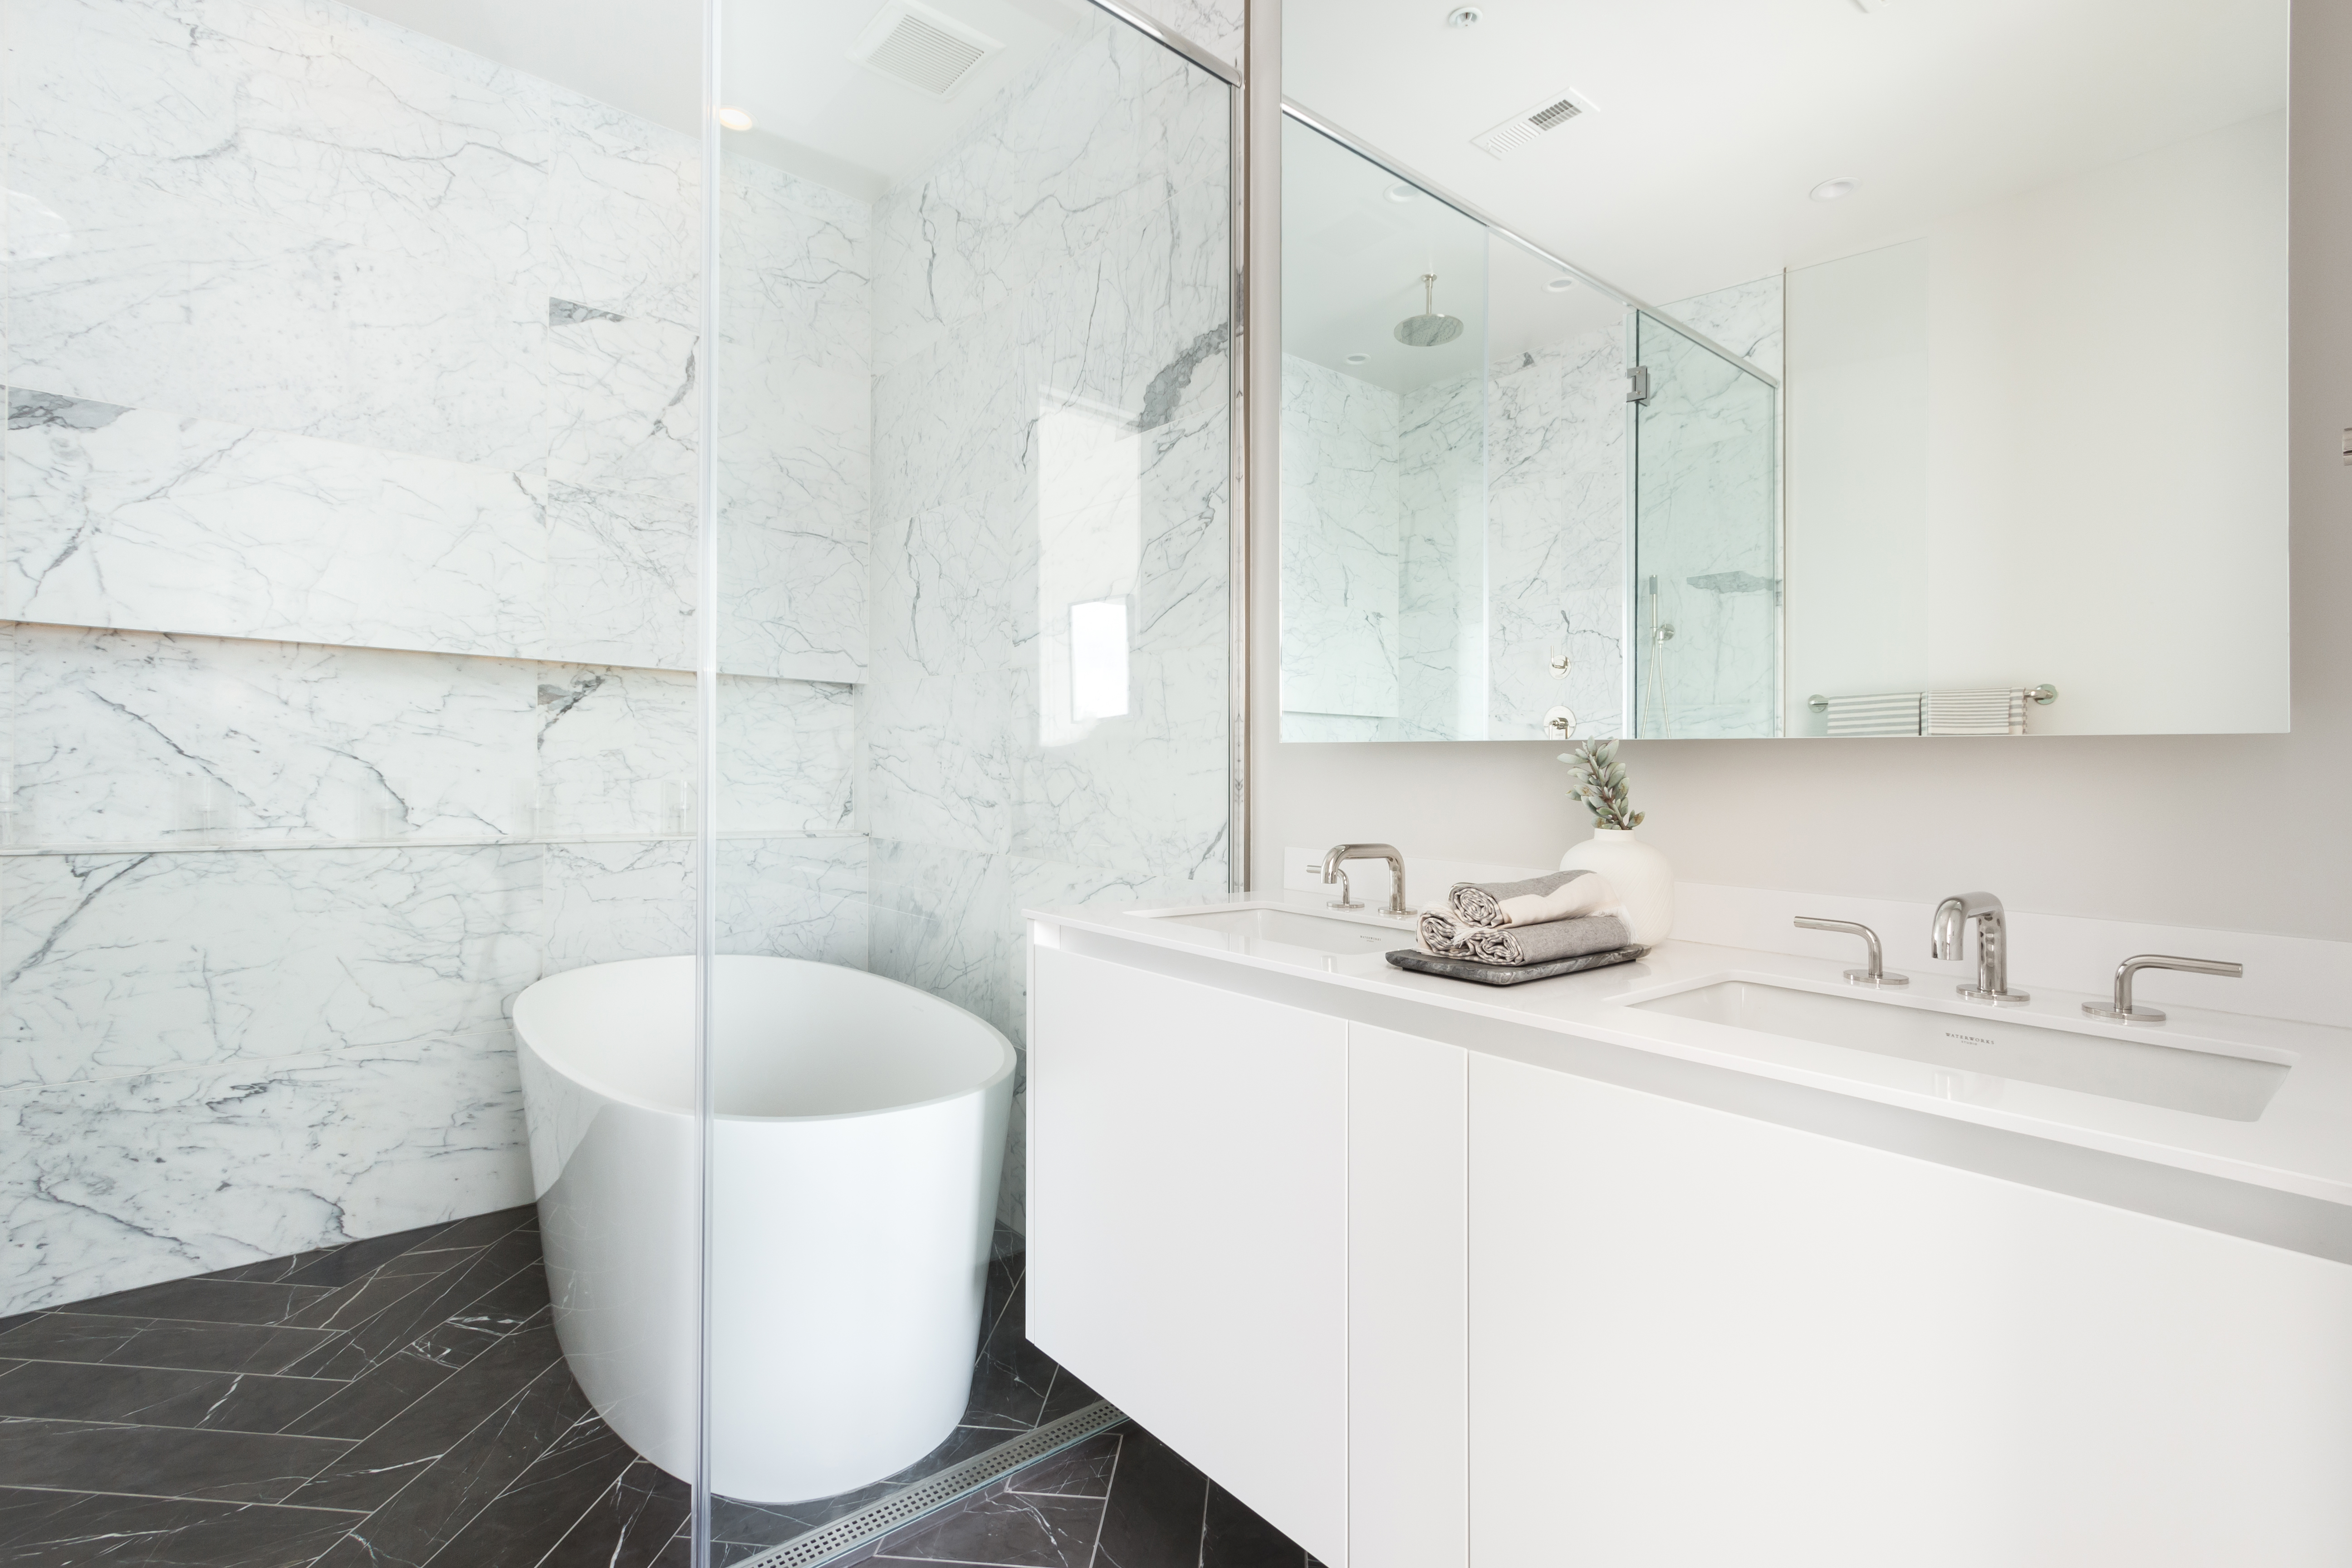 Five Exquisite Townhomes with a Twist Debut on Capitol Hill: Figure 4